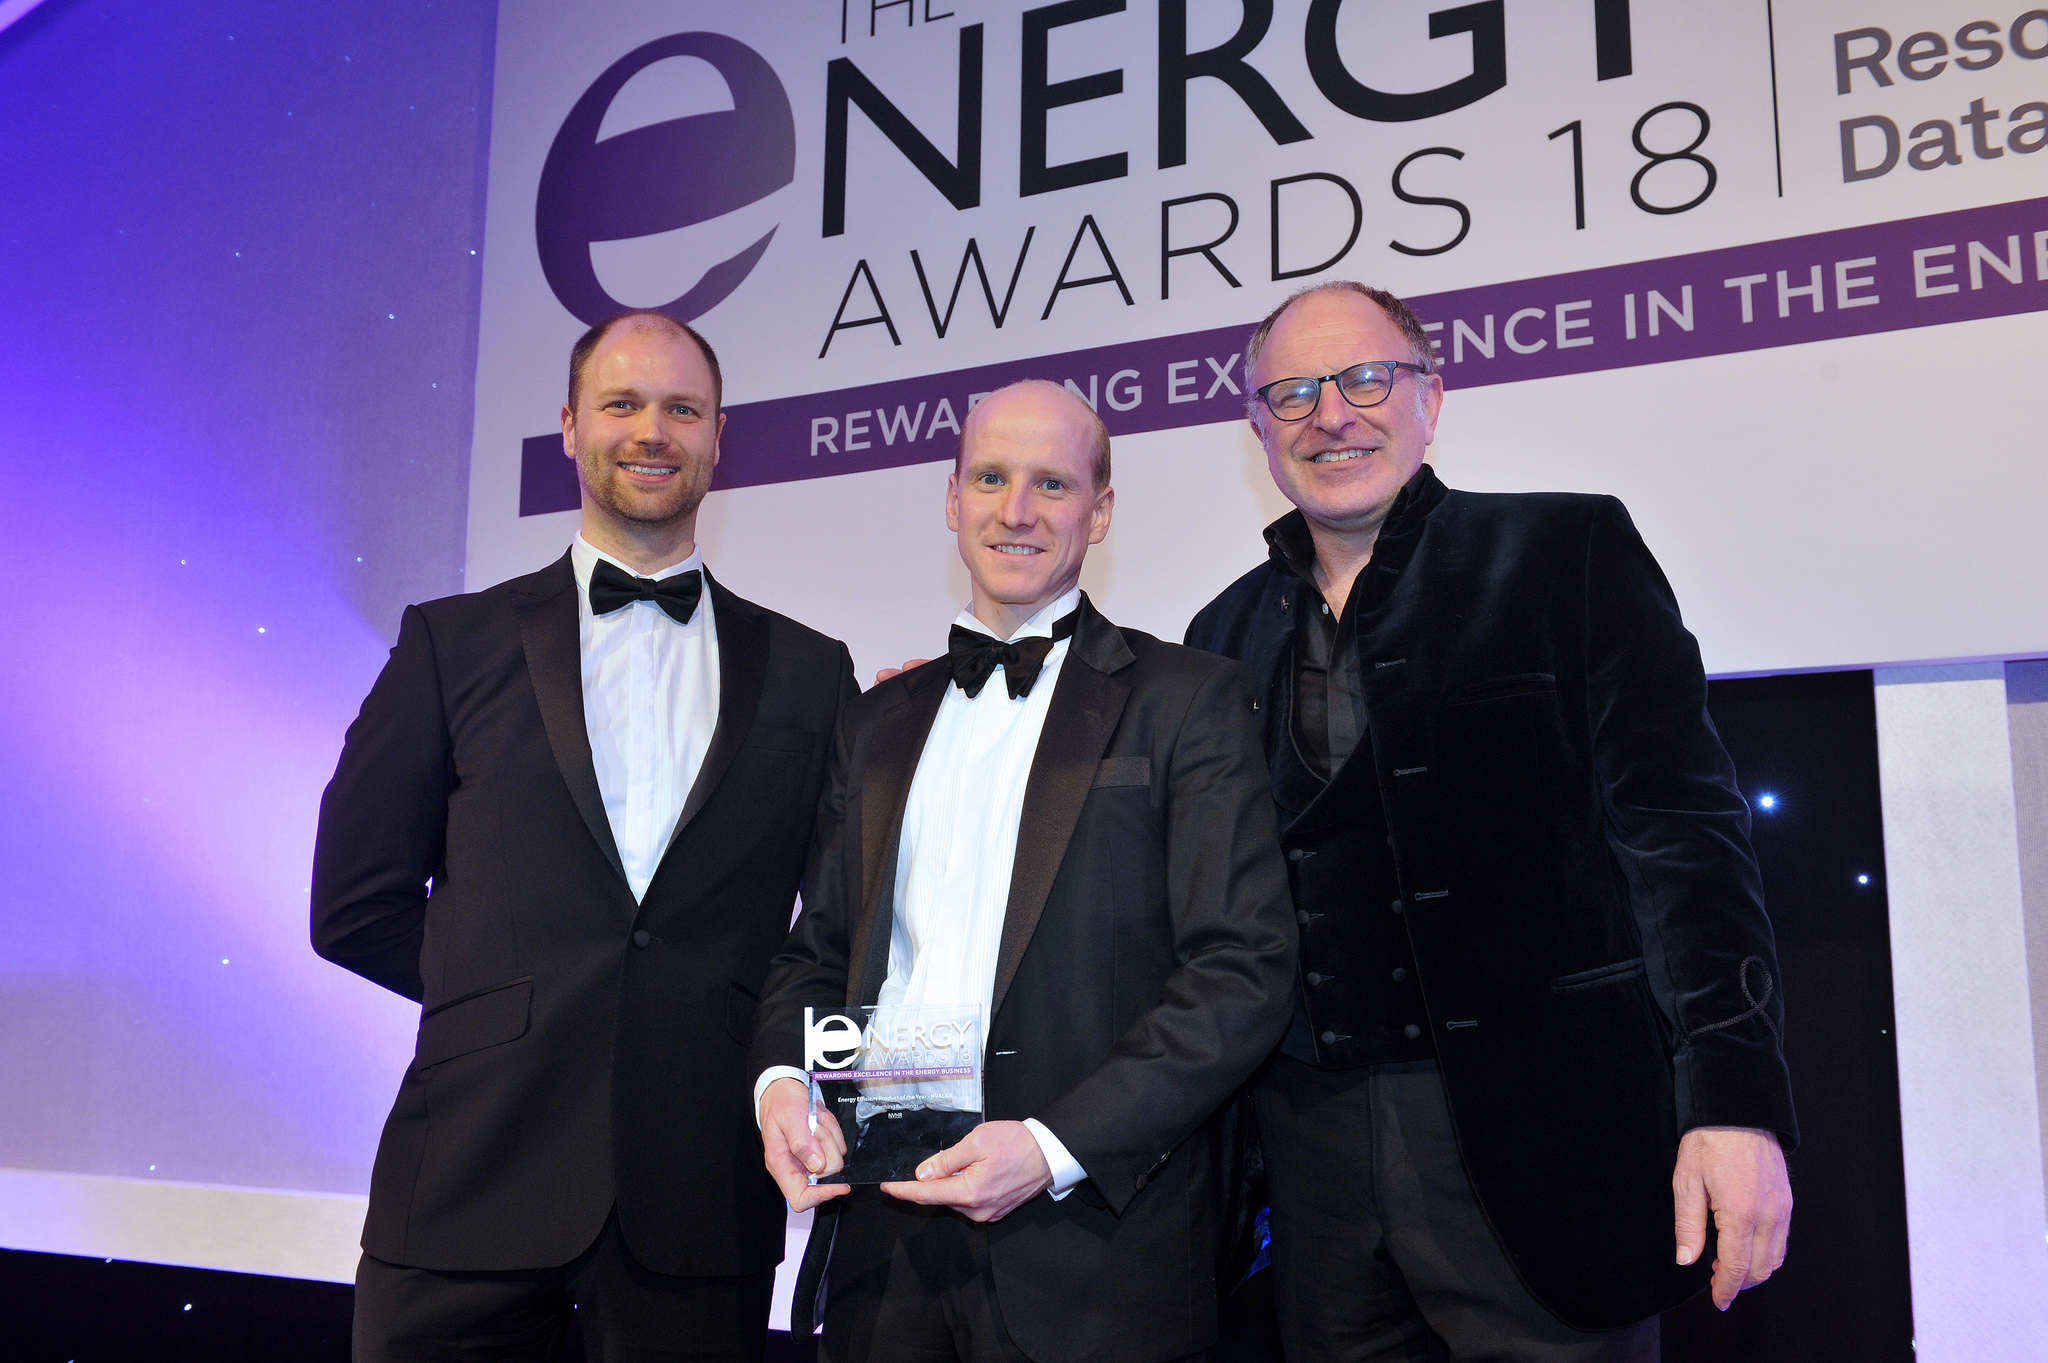 Dr Owen Connick - Breathing Buildings - Energy Awards